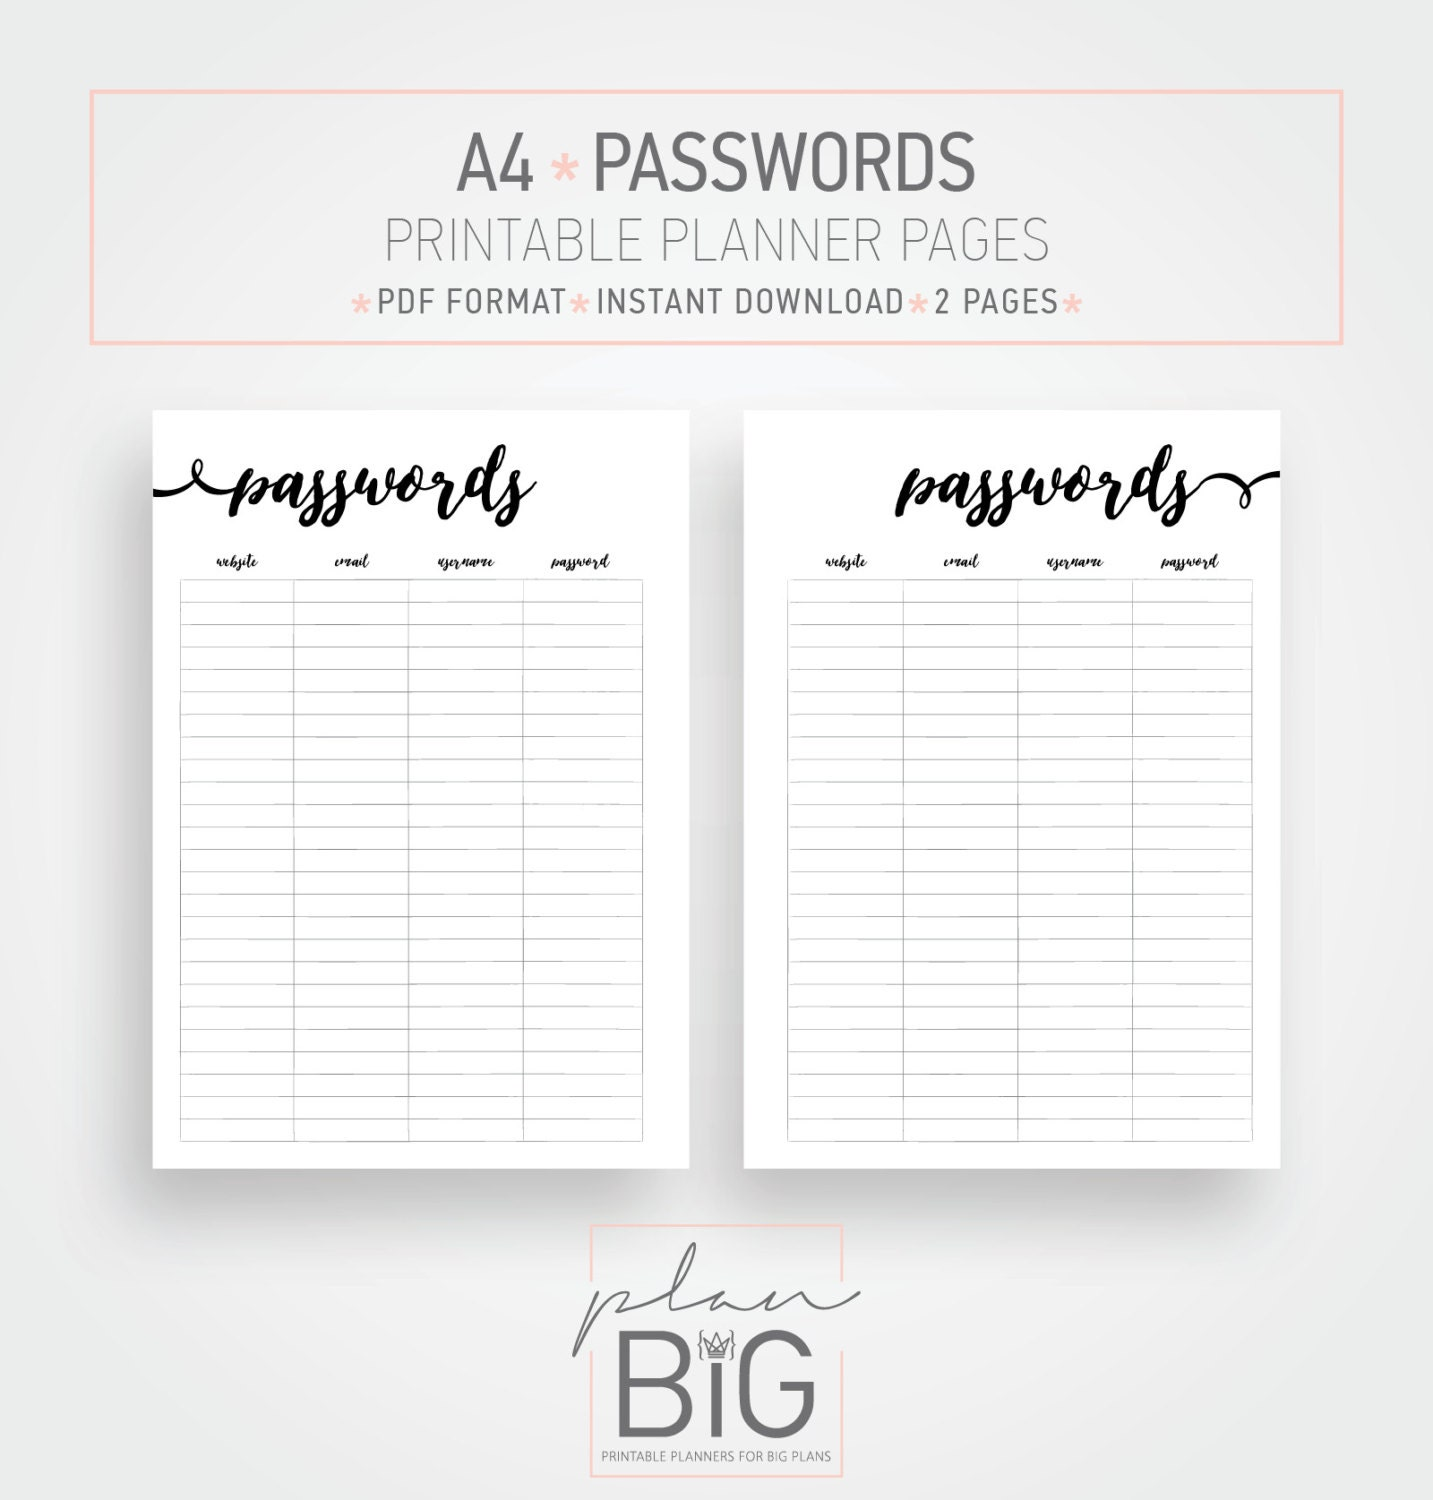 graphic about Password Printable known as Printable planner internet pages, Pword log, Pword keeper, A4 Printable planner, Planner inserts, Pword inserts, Low planner